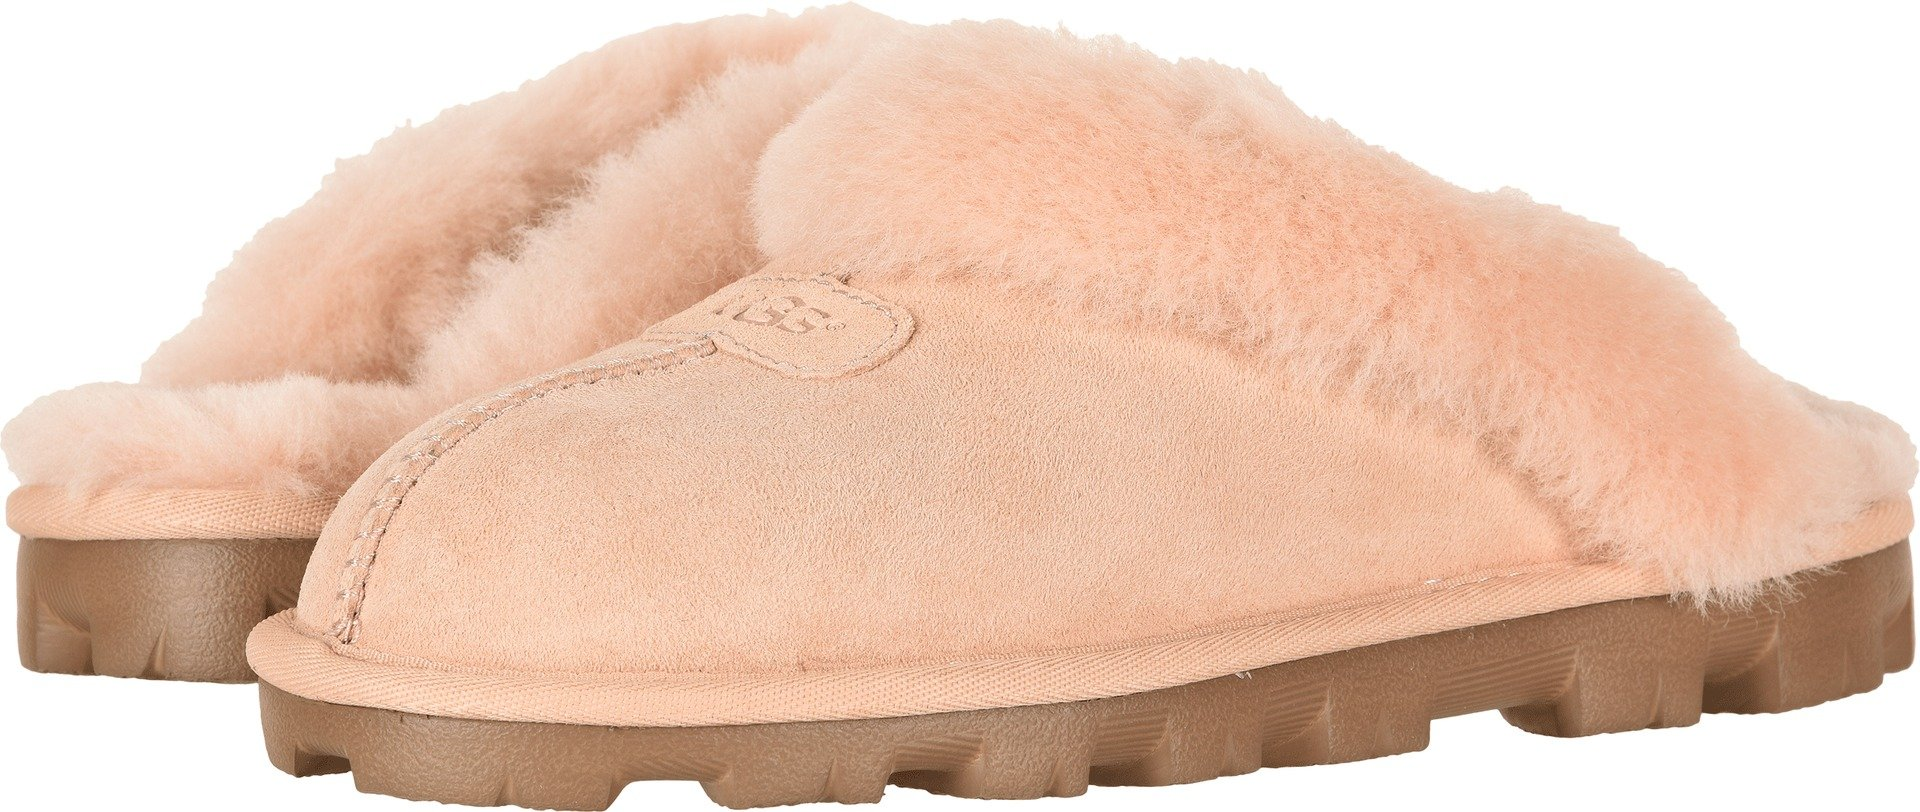 UGG Women's W Coquette Slipper, Amber Light, 8 M US by UGG